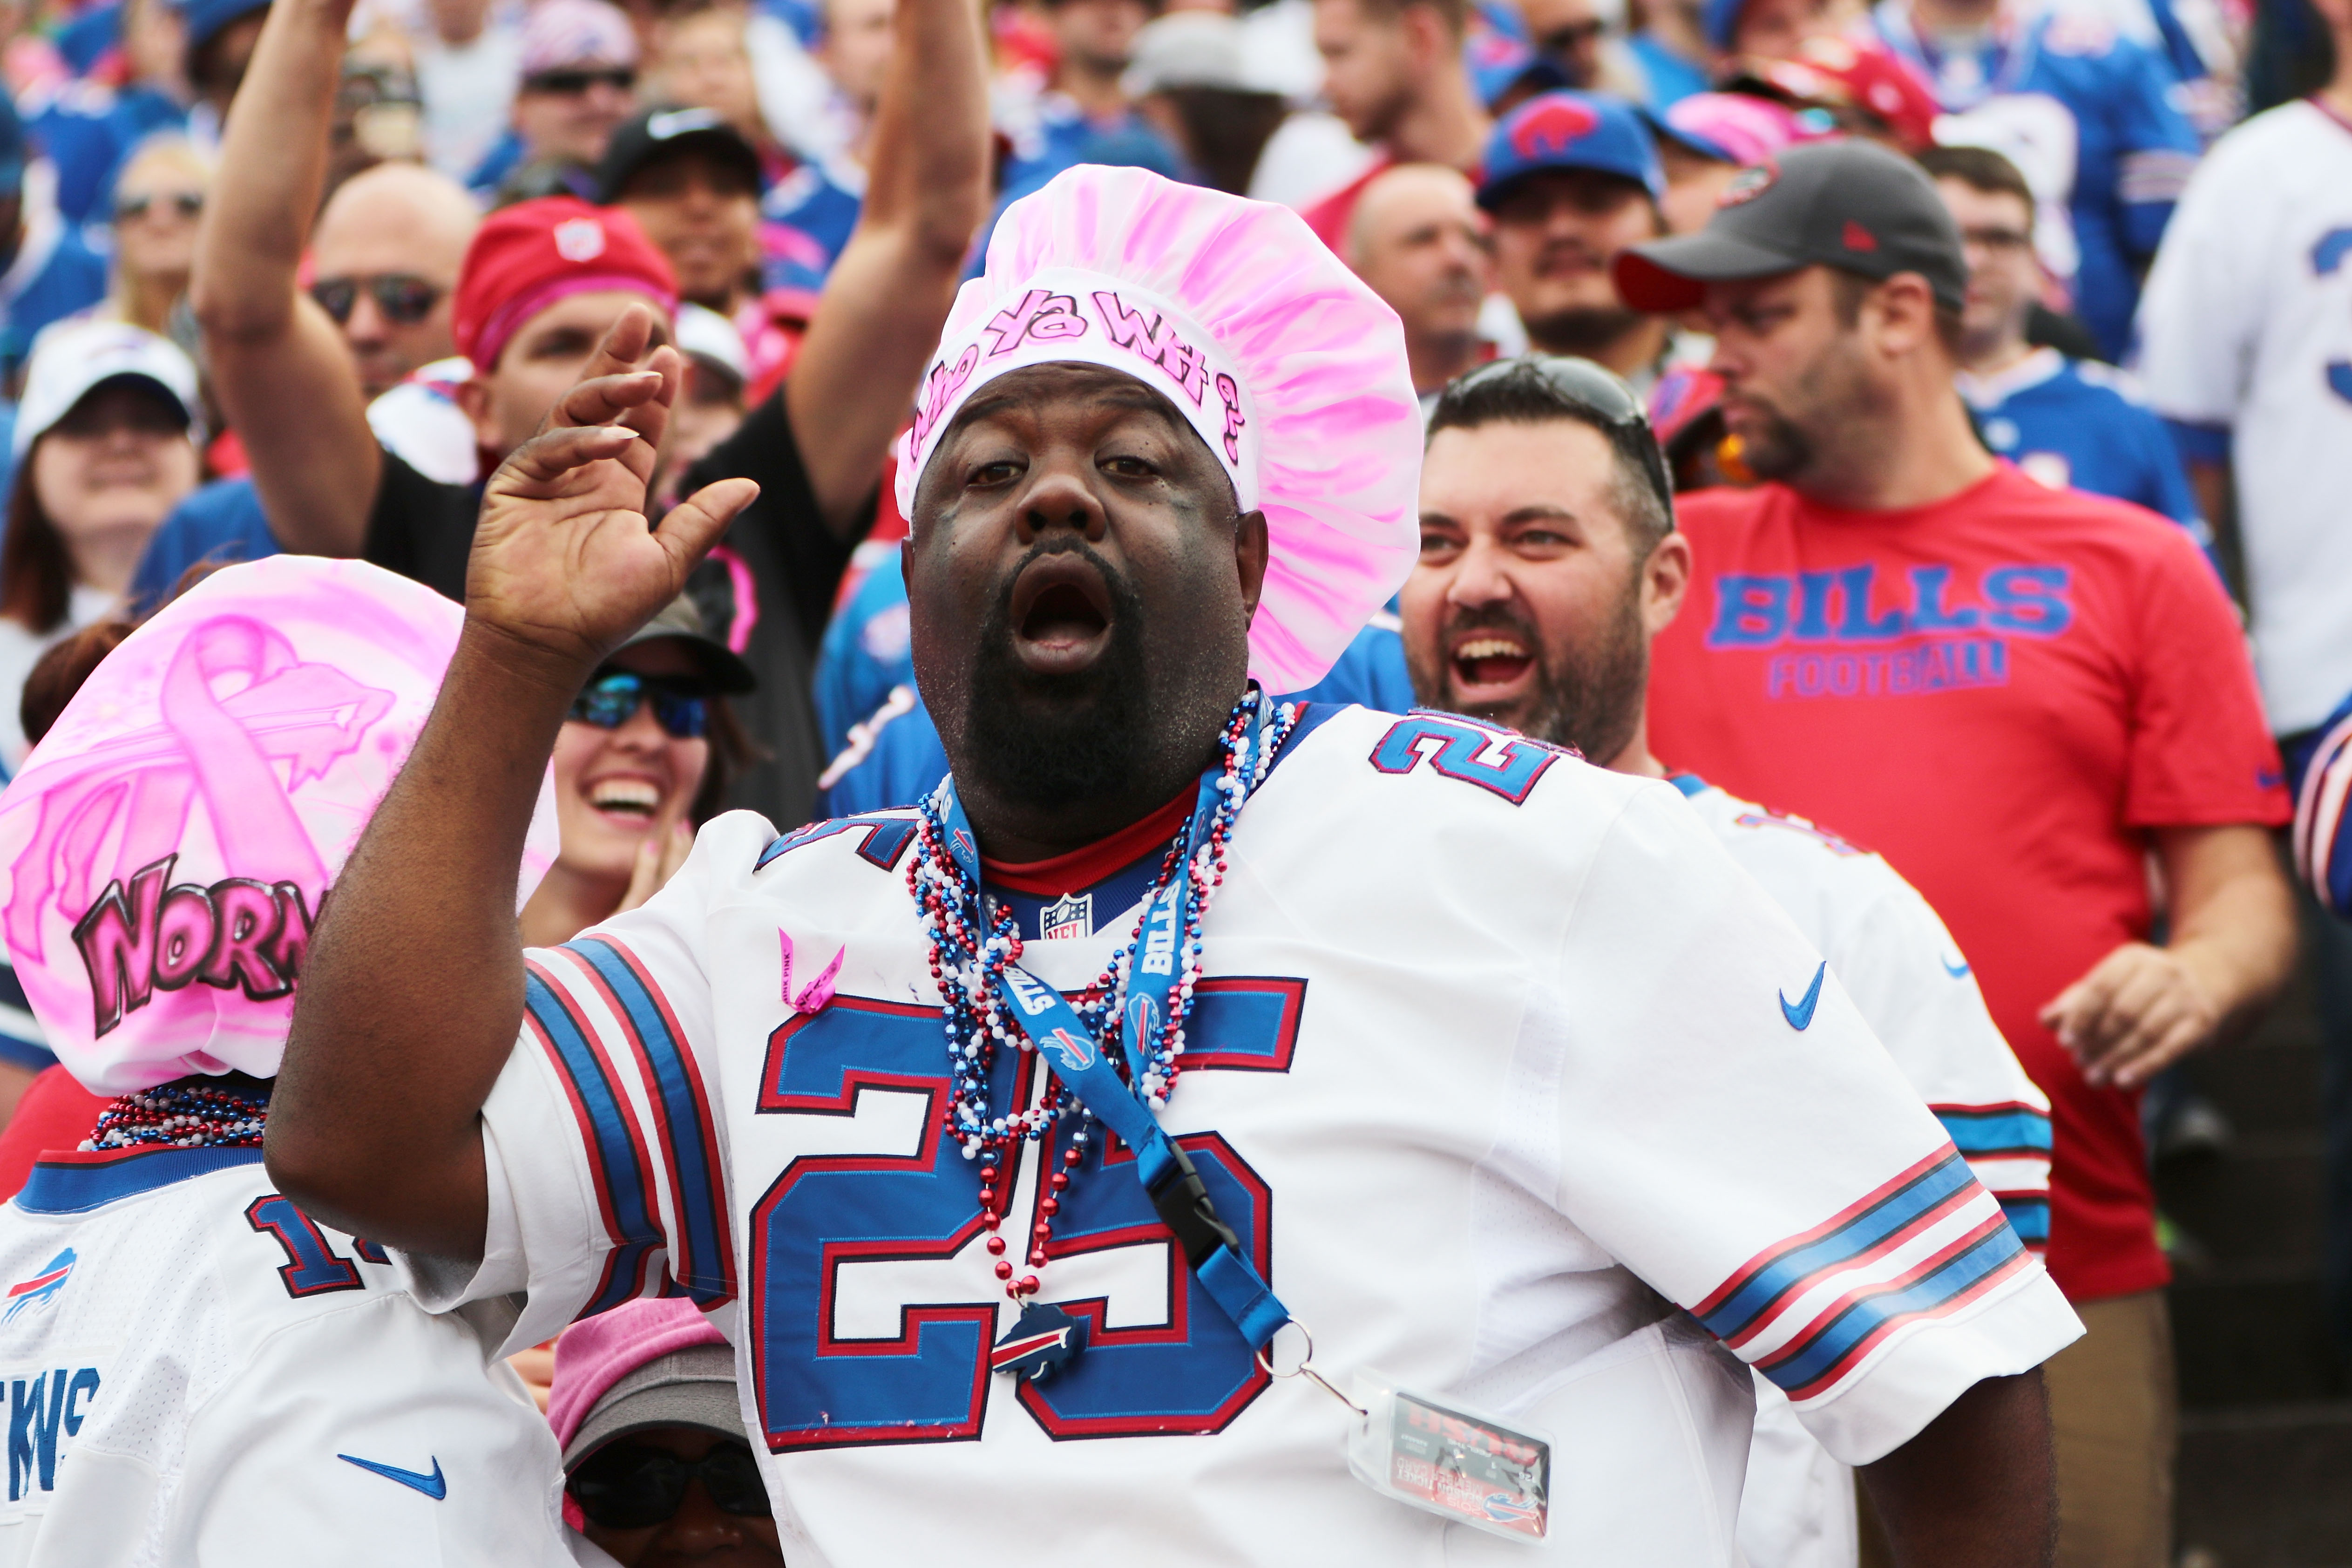 Only one Buffalo Bills' player in top 50 of jersey sales